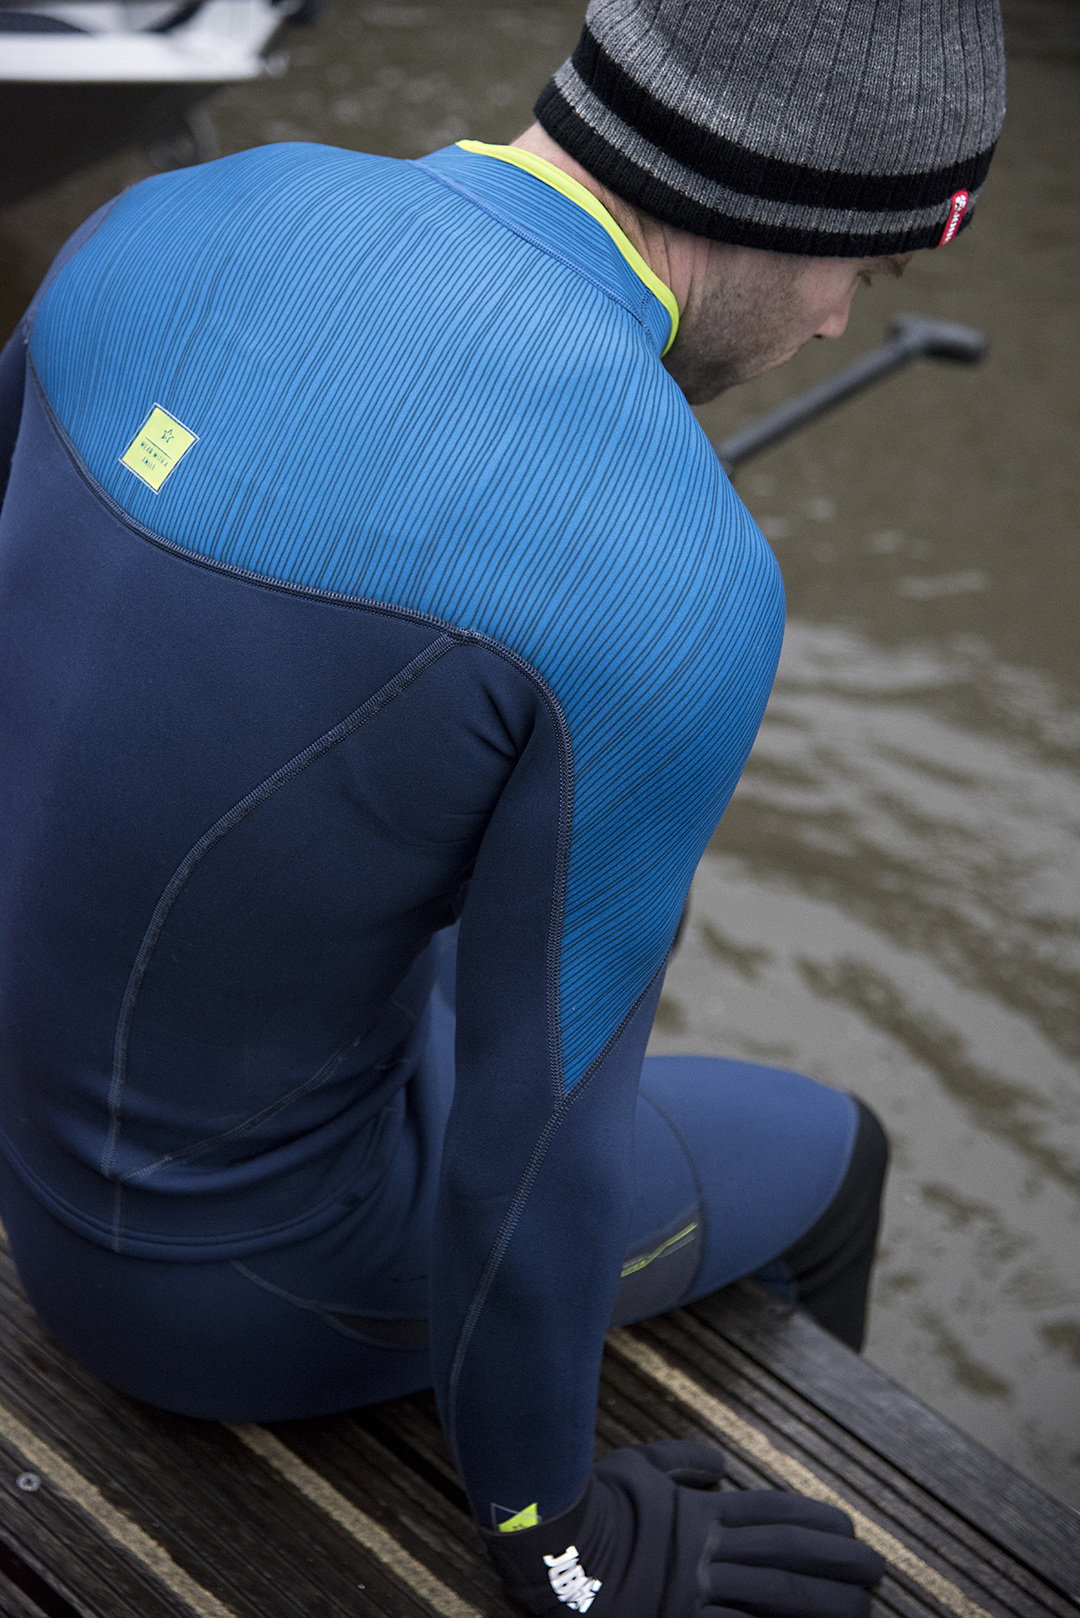 More winter-vibes: It all begins with neoprene